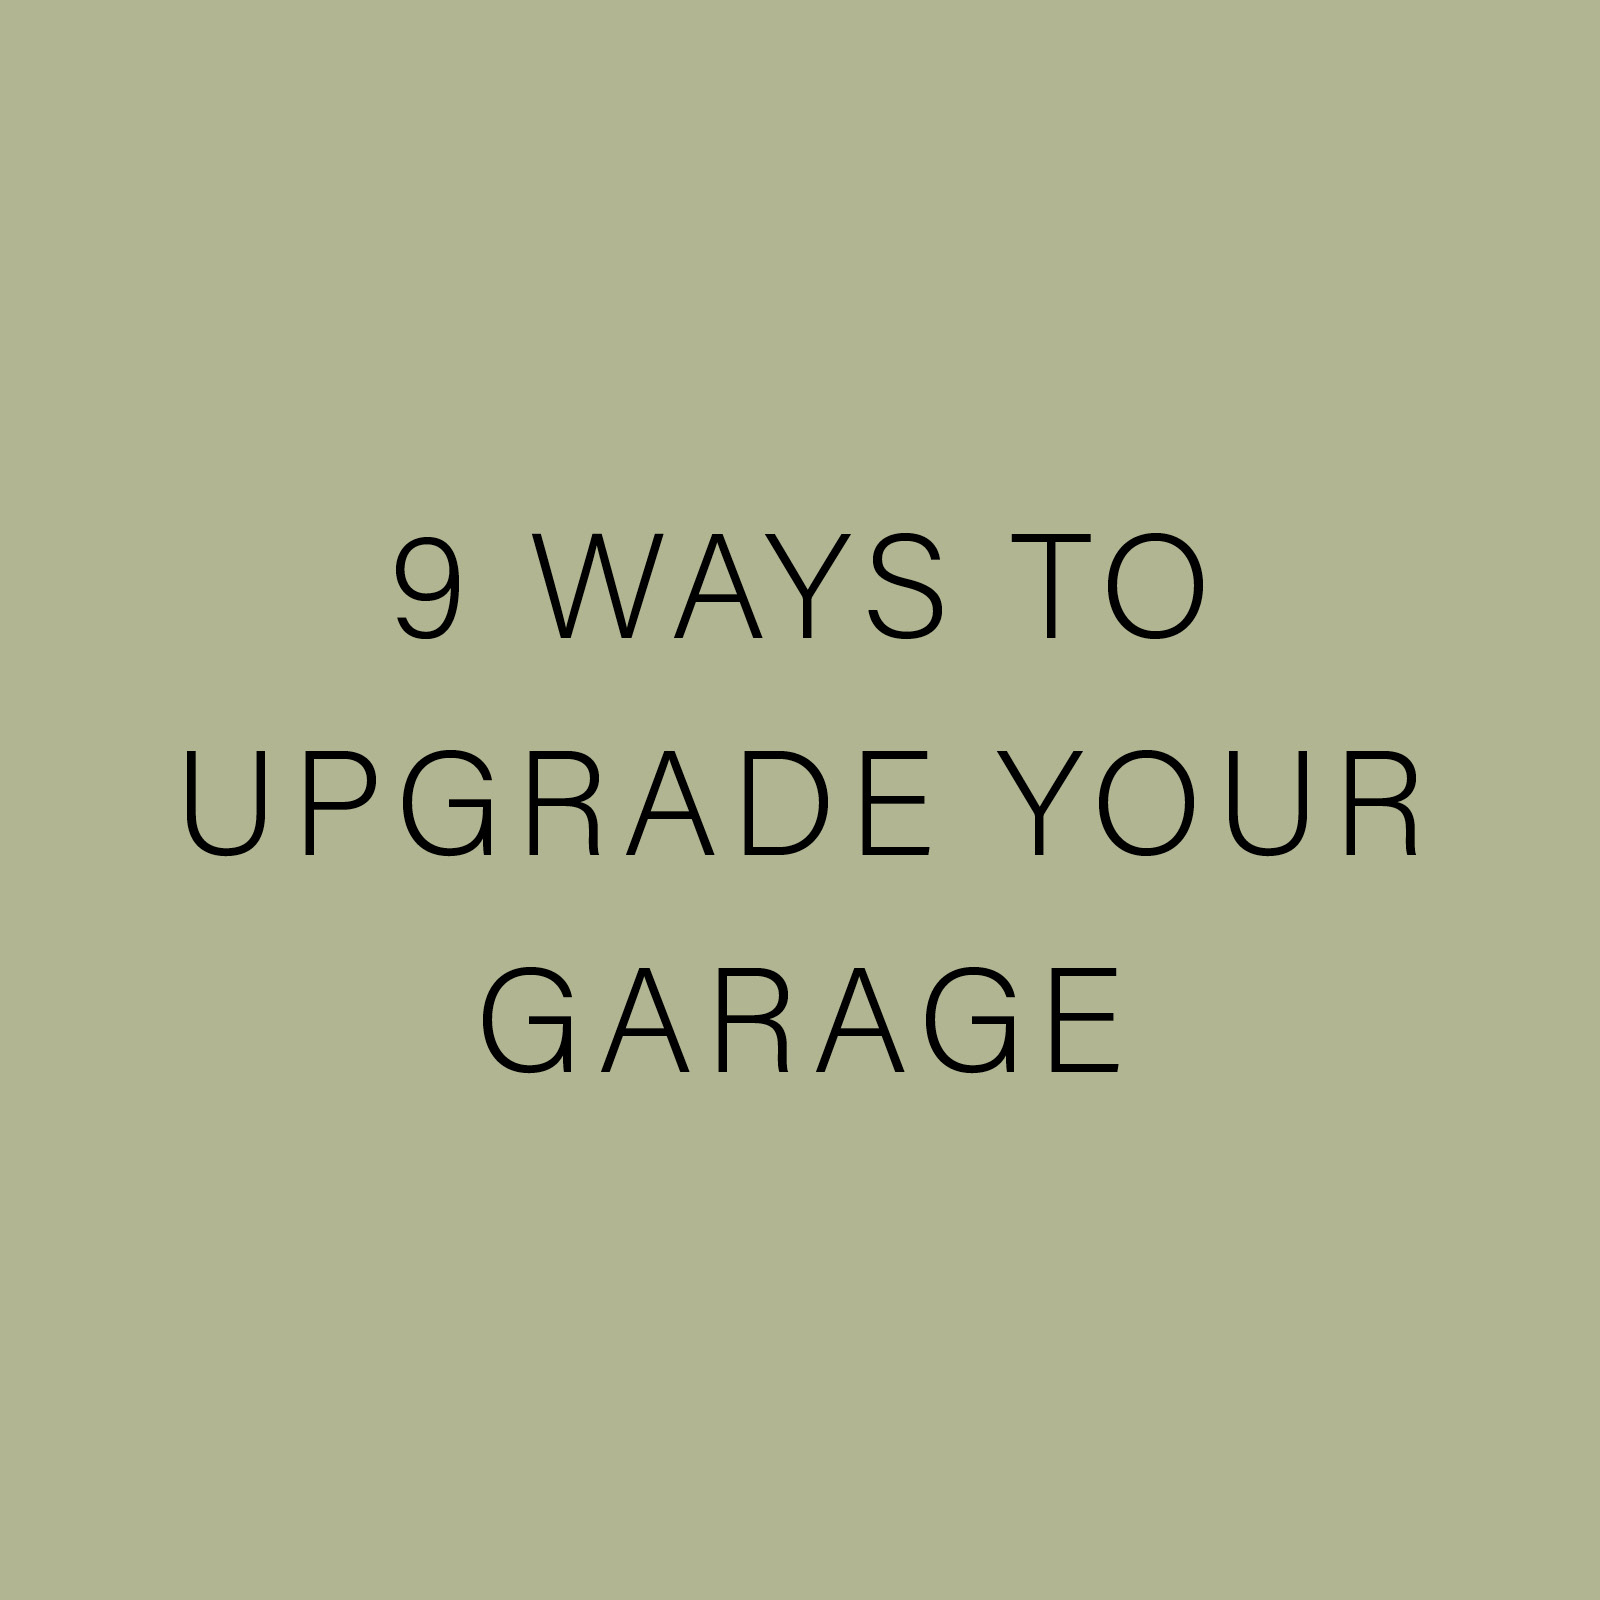 9 WAYS TO UPGRADE YOUR GARAGE.jpg